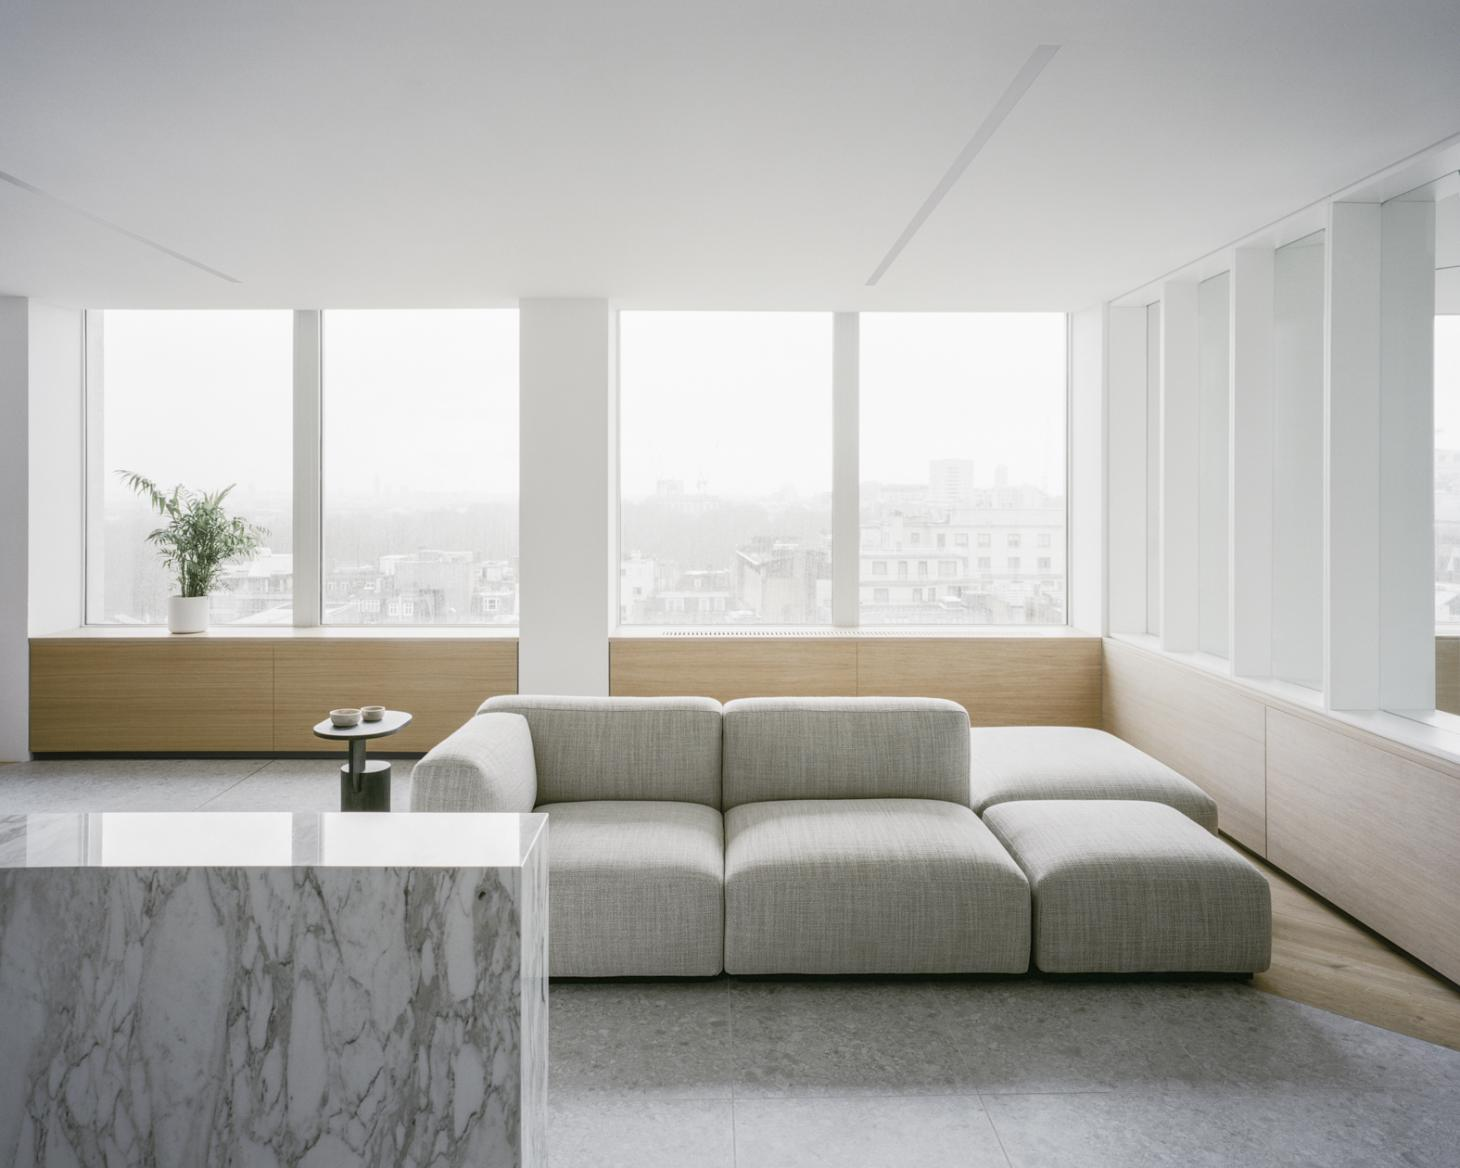 ConForm Architects at The Smithson Building with minimalist sofa